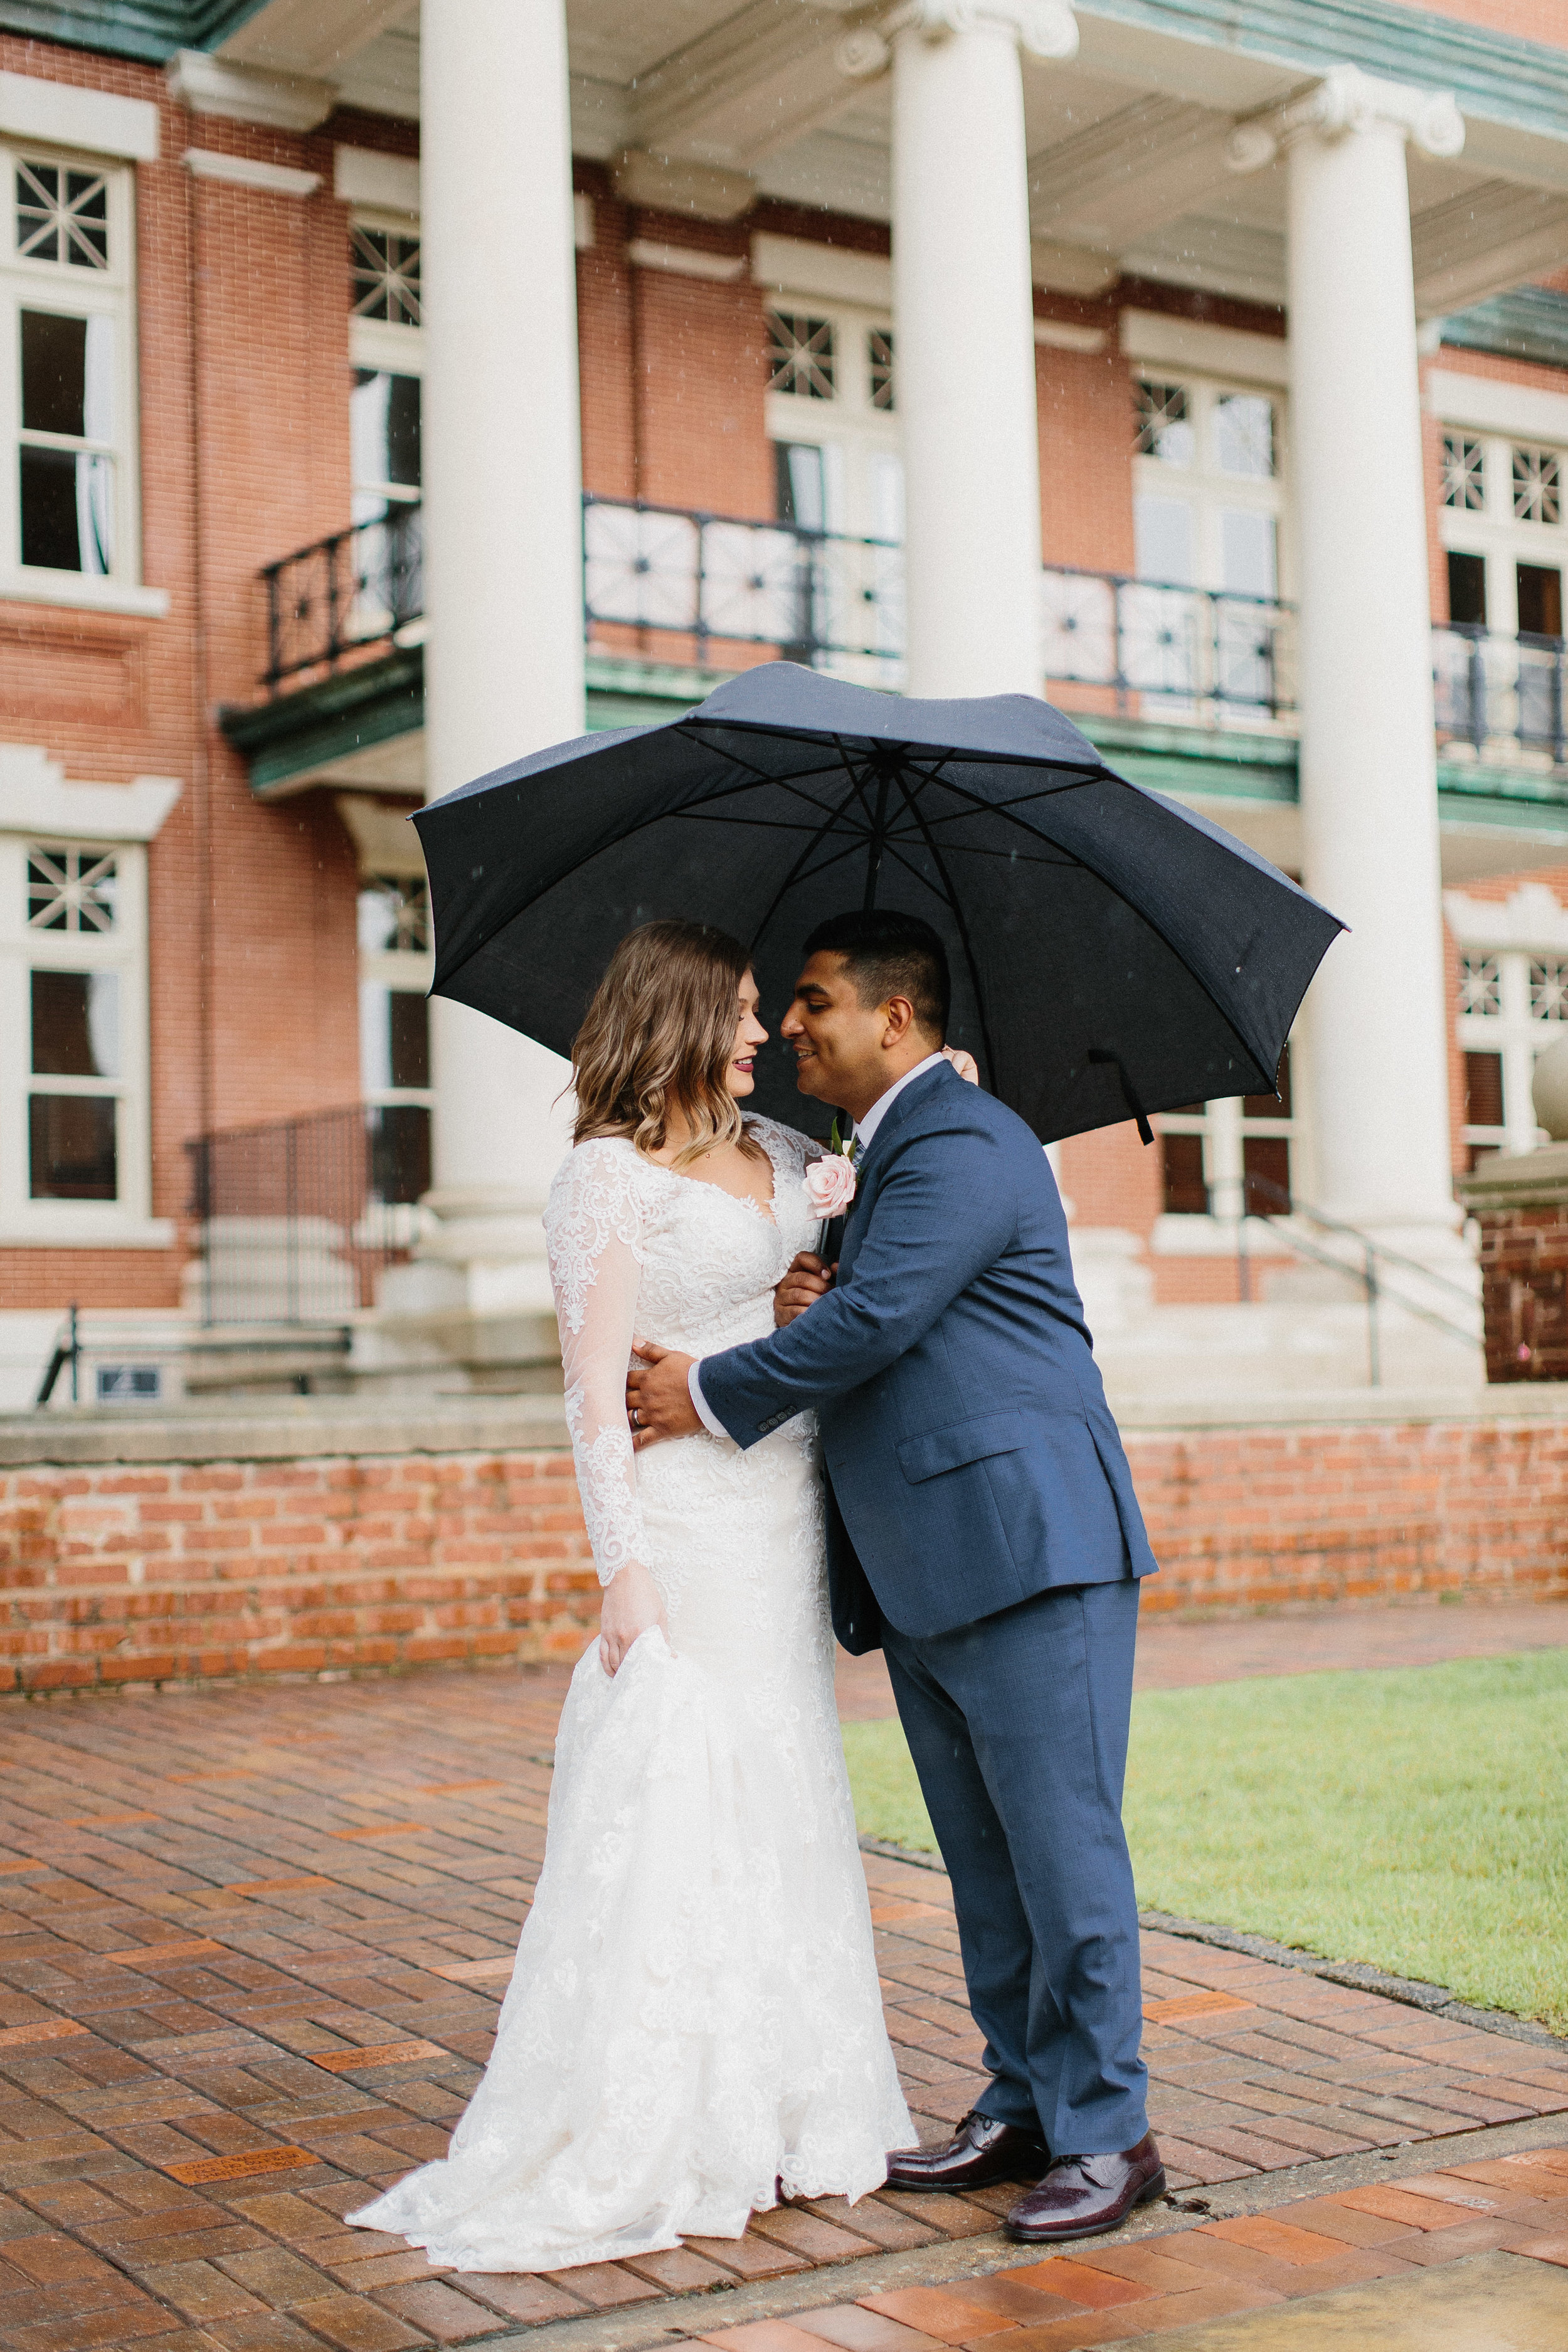 newnan_georgia_elegant_rainy_park_elopement_dogs_pups_tiny_wedding_backless_dress_blue_suit_georgia_atlanta_photographer_1107.jpg